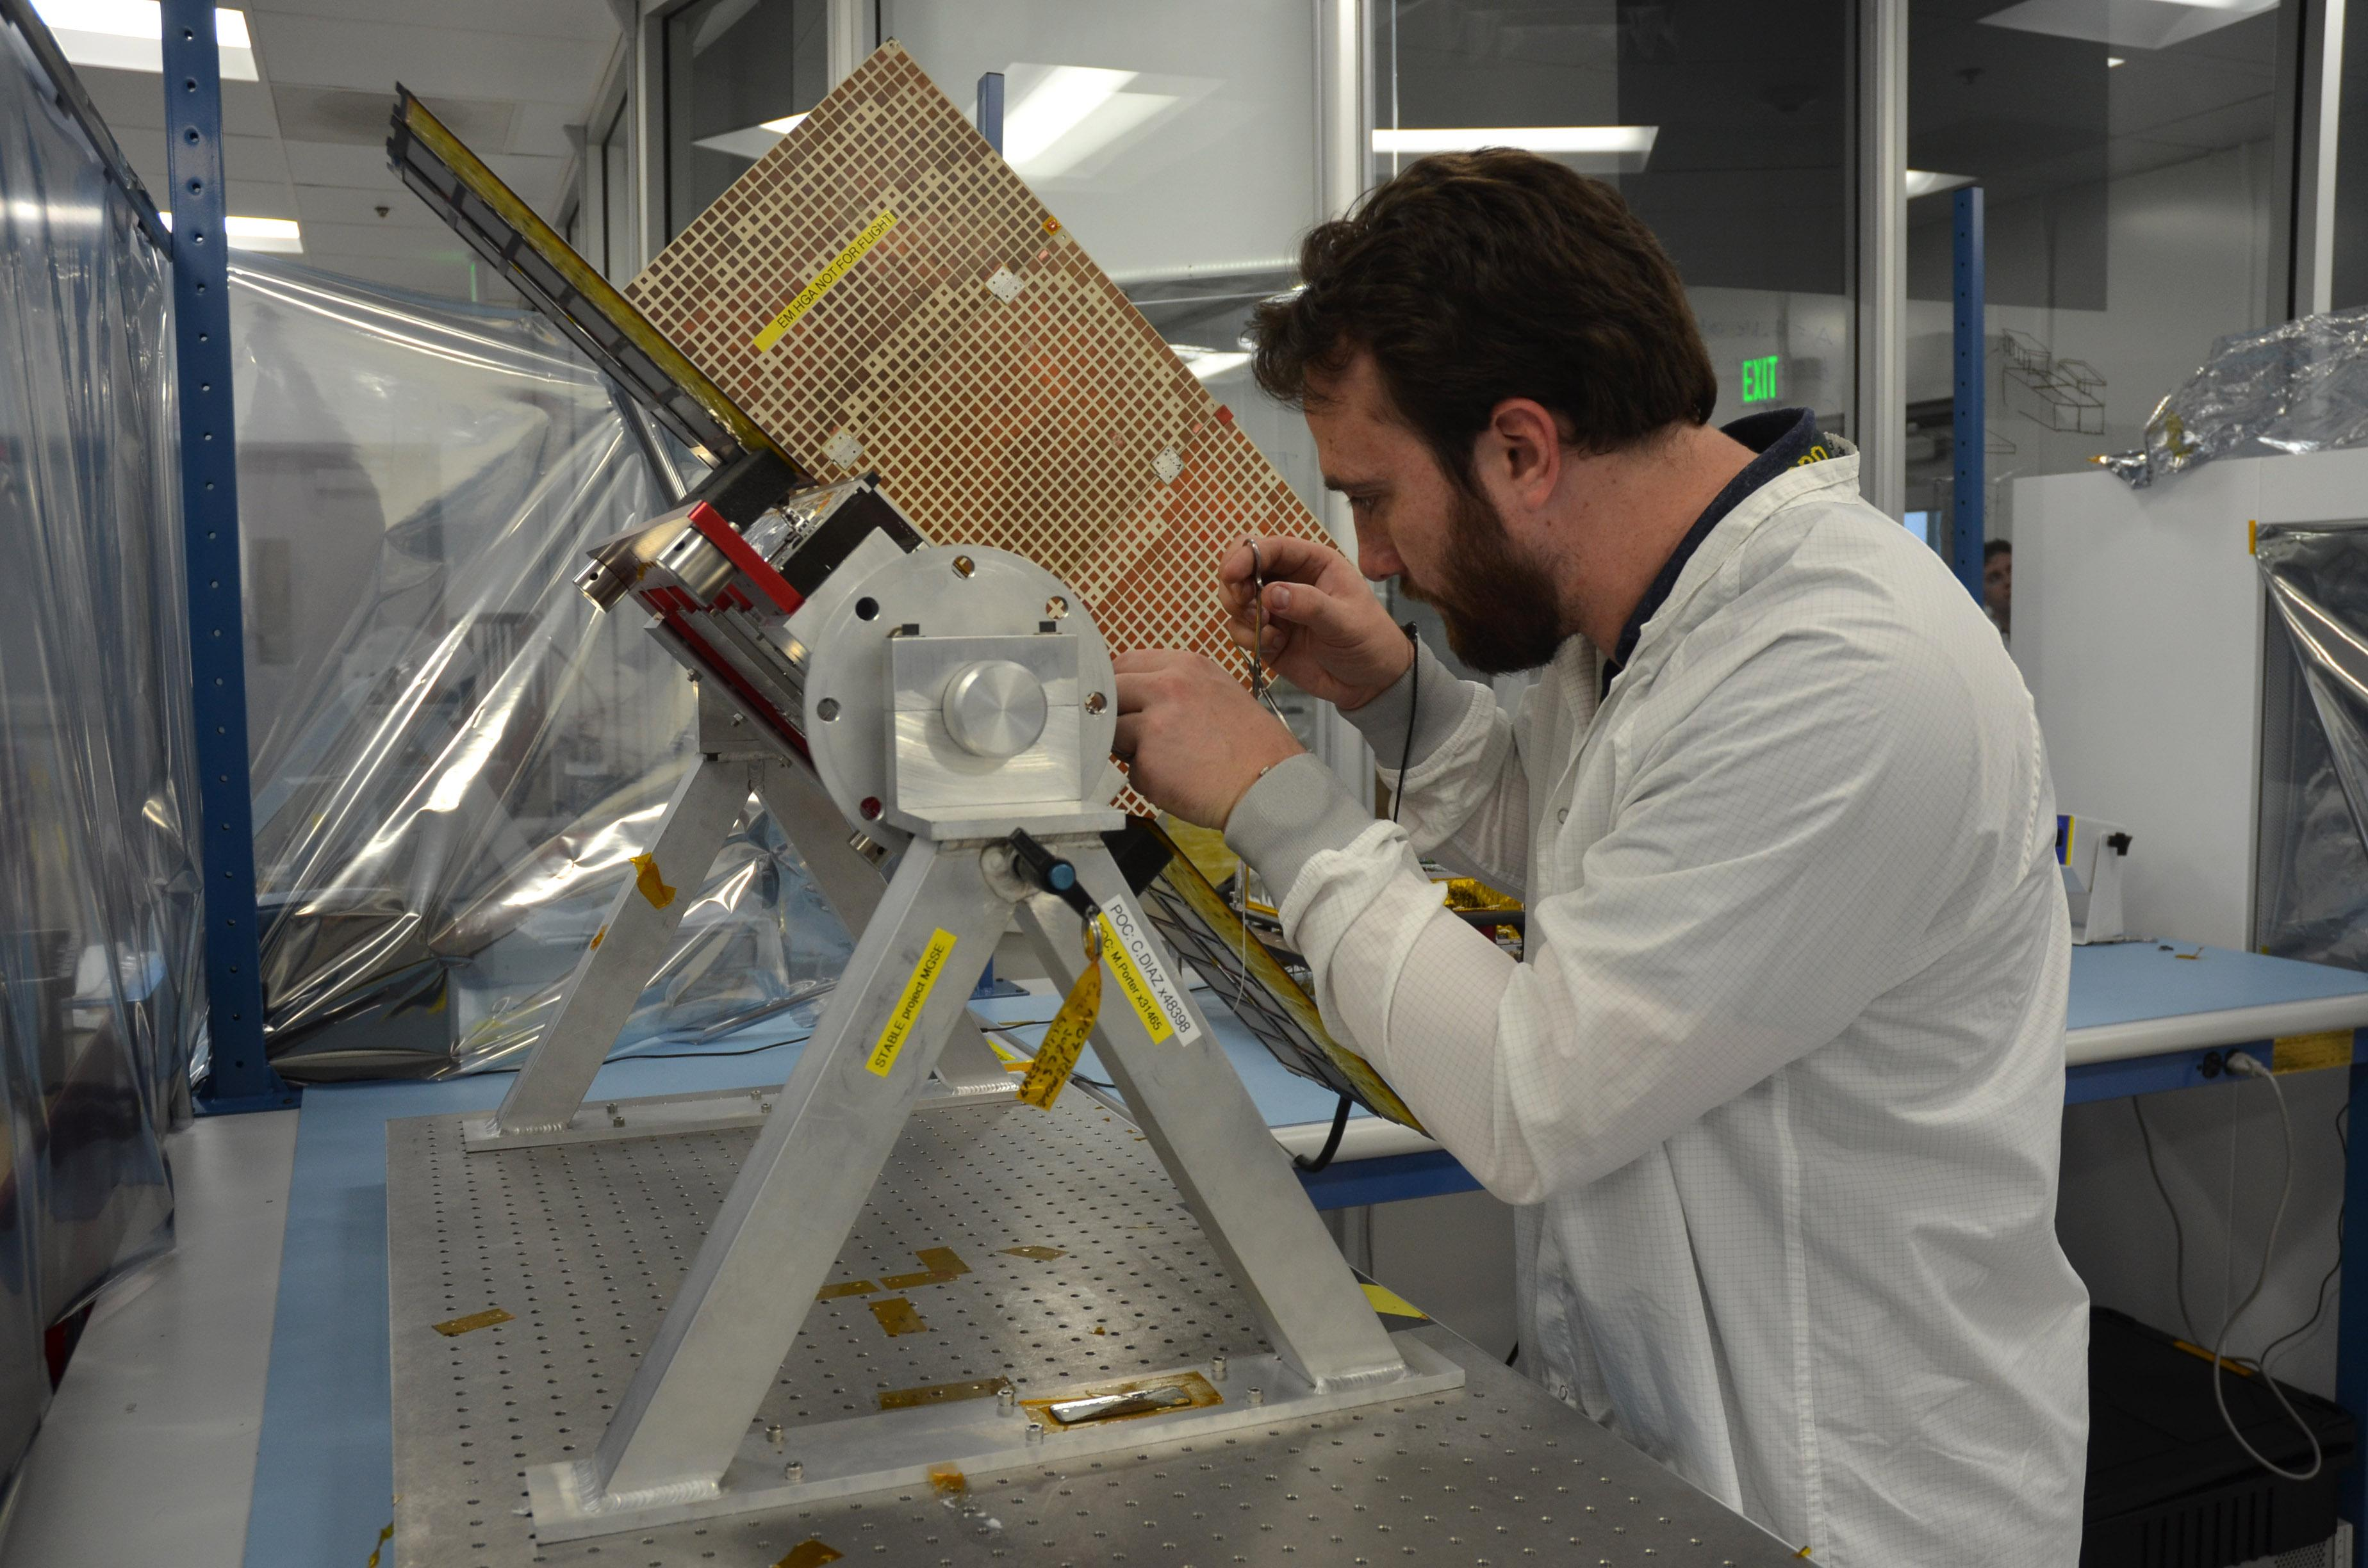 Joel Steinkraus, lead mechanical engineer for the MarCO (Mars Cube One) CubeSat spacecraft, adjusts a model of one of the two spacecraft.